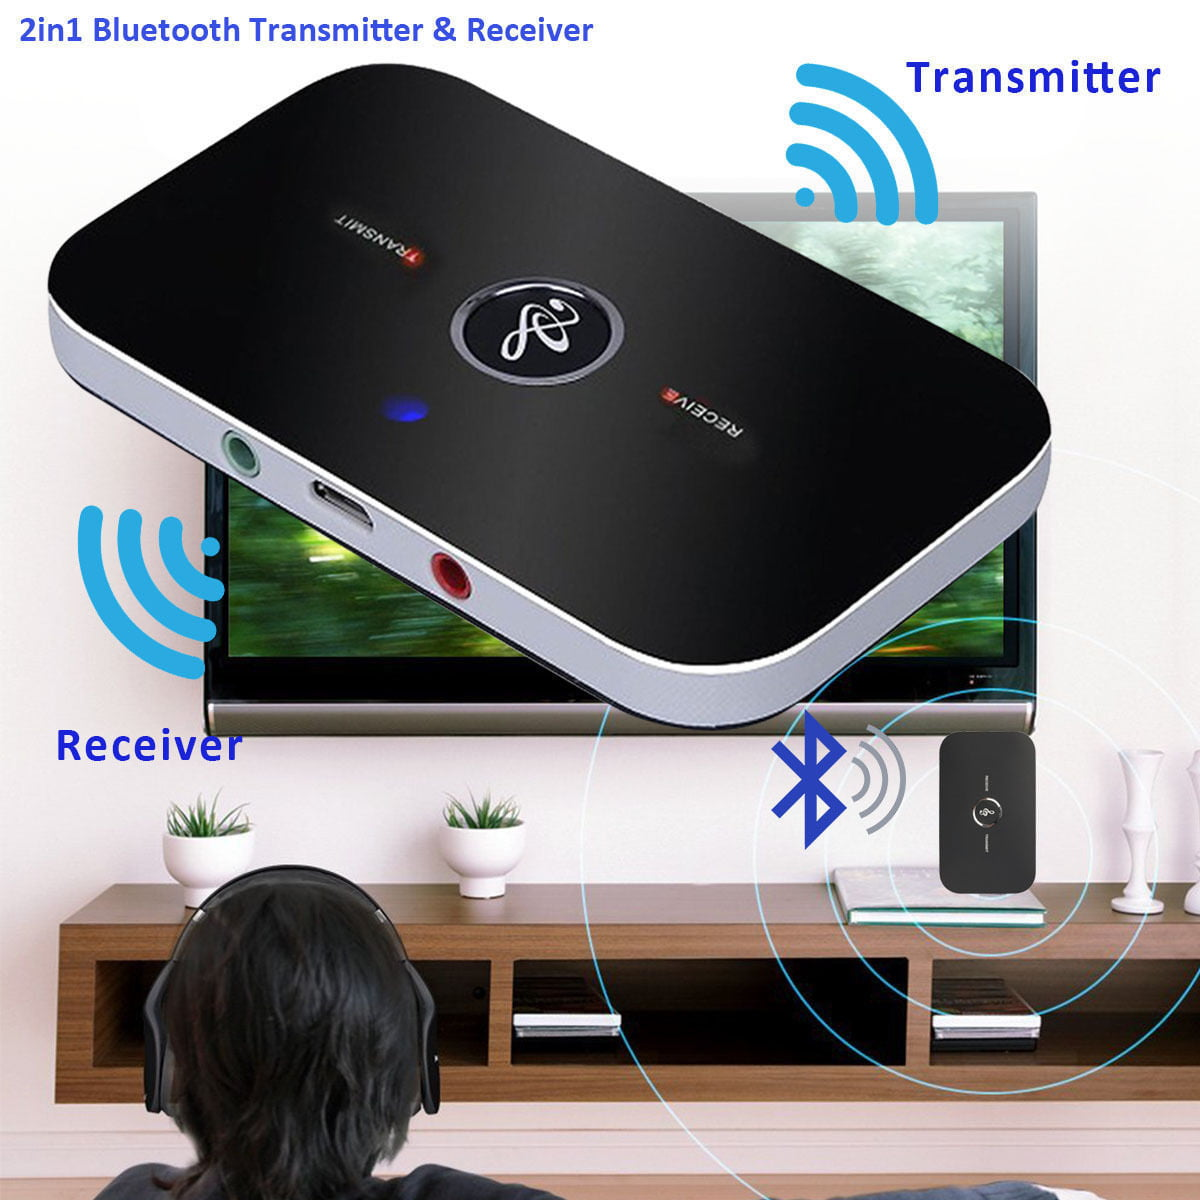 Bluetooth Transmitter Receiver Wireless Stereo Audio Adapter Car Kit For Headphones Tv Computer Mp3 Mp4 Iphone Walmart Com Walmart Com